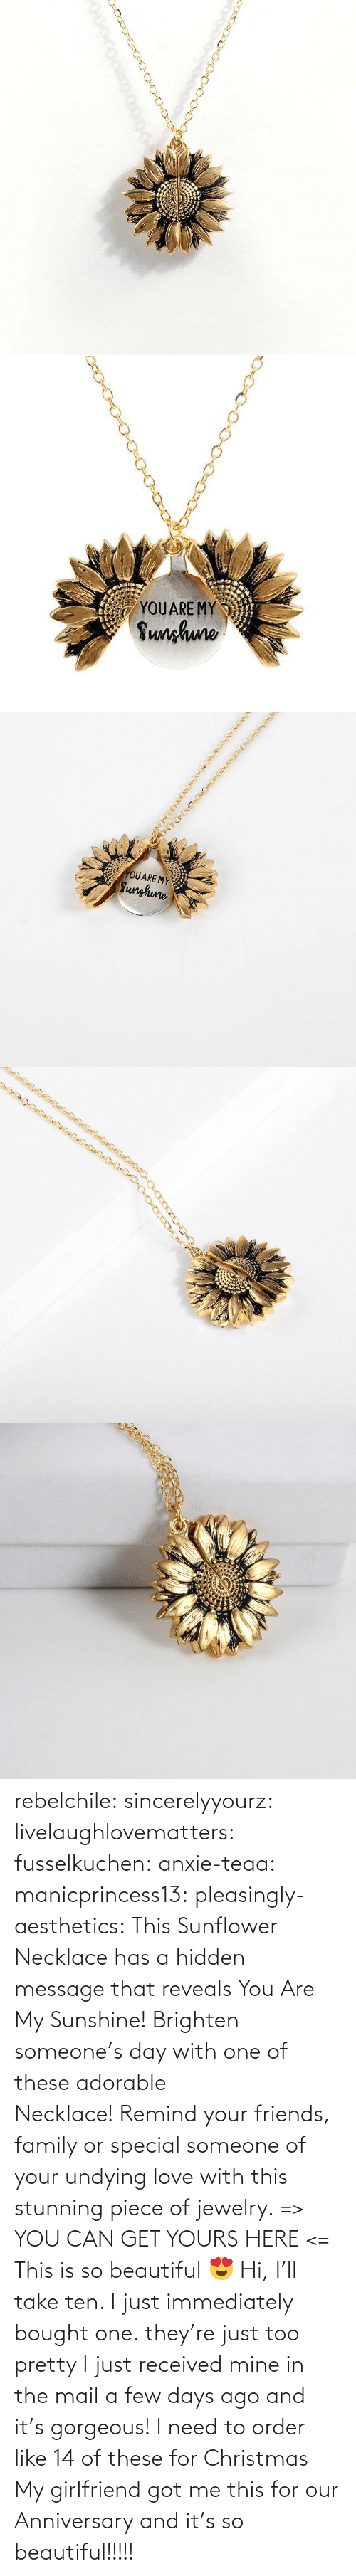 Hi: rebelchile:  sincerelyyourz:  livelaughlovematters:  fusselkuchen:  anxie-teaa:   manicprincess13:   pleasingly-aesthetics:  This Sunflower Necklace has a hidden message that reveals You Are My Sunshine! Brighten someone's day with one of these adorable Necklace! Remind your friends, family or special someone of your undying love with this stunning piece of jewelry. => YOU CAN GET YOURS HERE <=   This is so beautiful 😍    Hi, I'll take ten.    I just immediately bought one. they're just too pretty   I just received mine in the mail a few days ago and it's gorgeous!   I need to order like 14 of these for Christmas    My girlfriend got me this for our Anniversary and it's so beautiful!!!!!